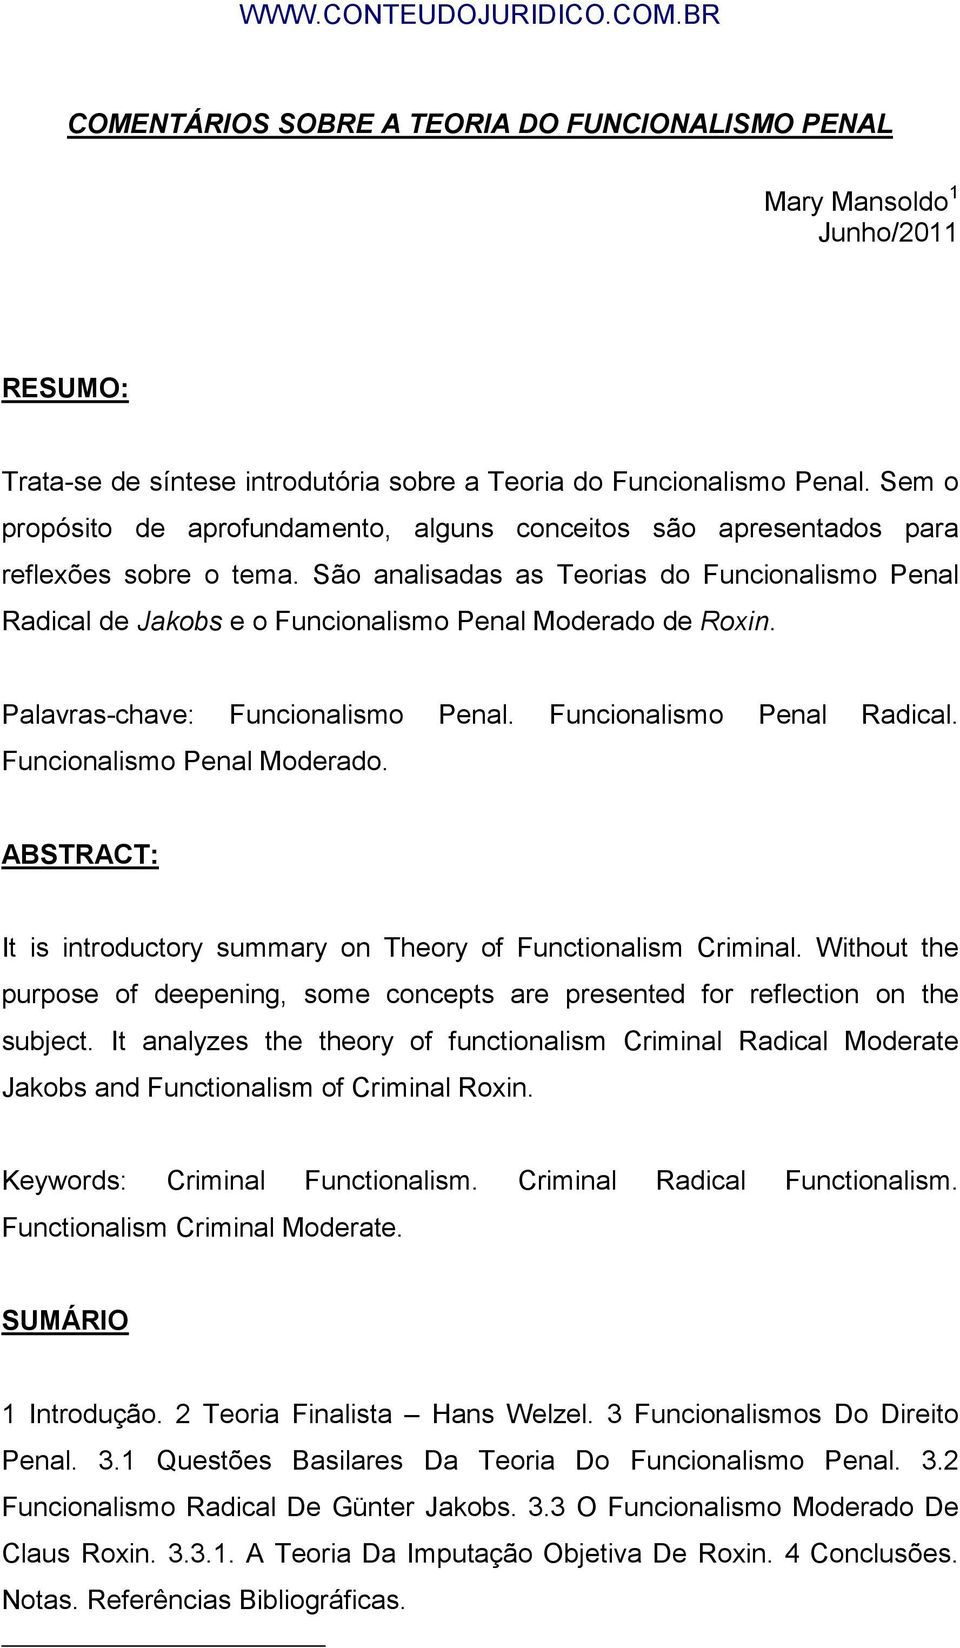 São analisadas as Teorias do Funcionalismo Penal Radical de Jakobs e o Funcionalismo Penal Moderado de Roxin. Palavras-chave: Funcionalismo Penal. Funcionalismo Penal Radical. Funcionalismo Penal Moderado. ABSTRACT: It is introductory summary on Theory of Functionalism Criminal.